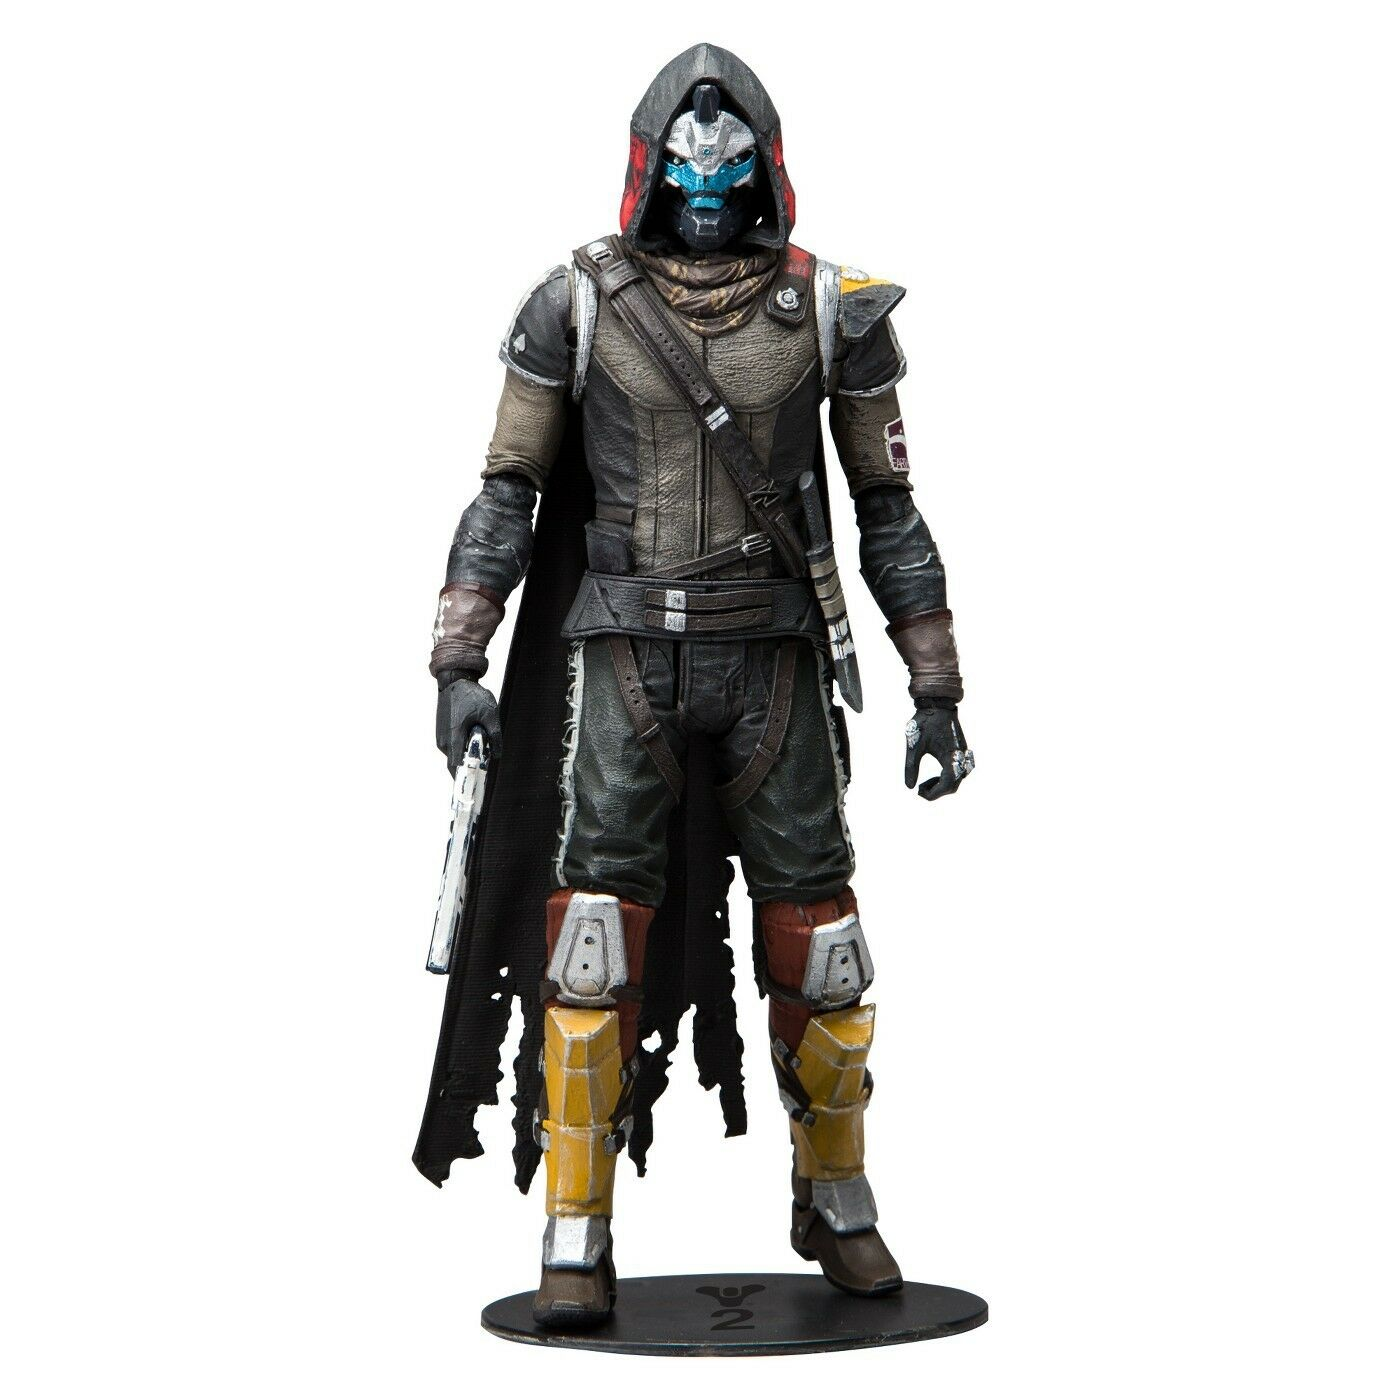 McFarlane Toys Destiny 2 Cayde 6 Action Action Action Figure 79bc2a